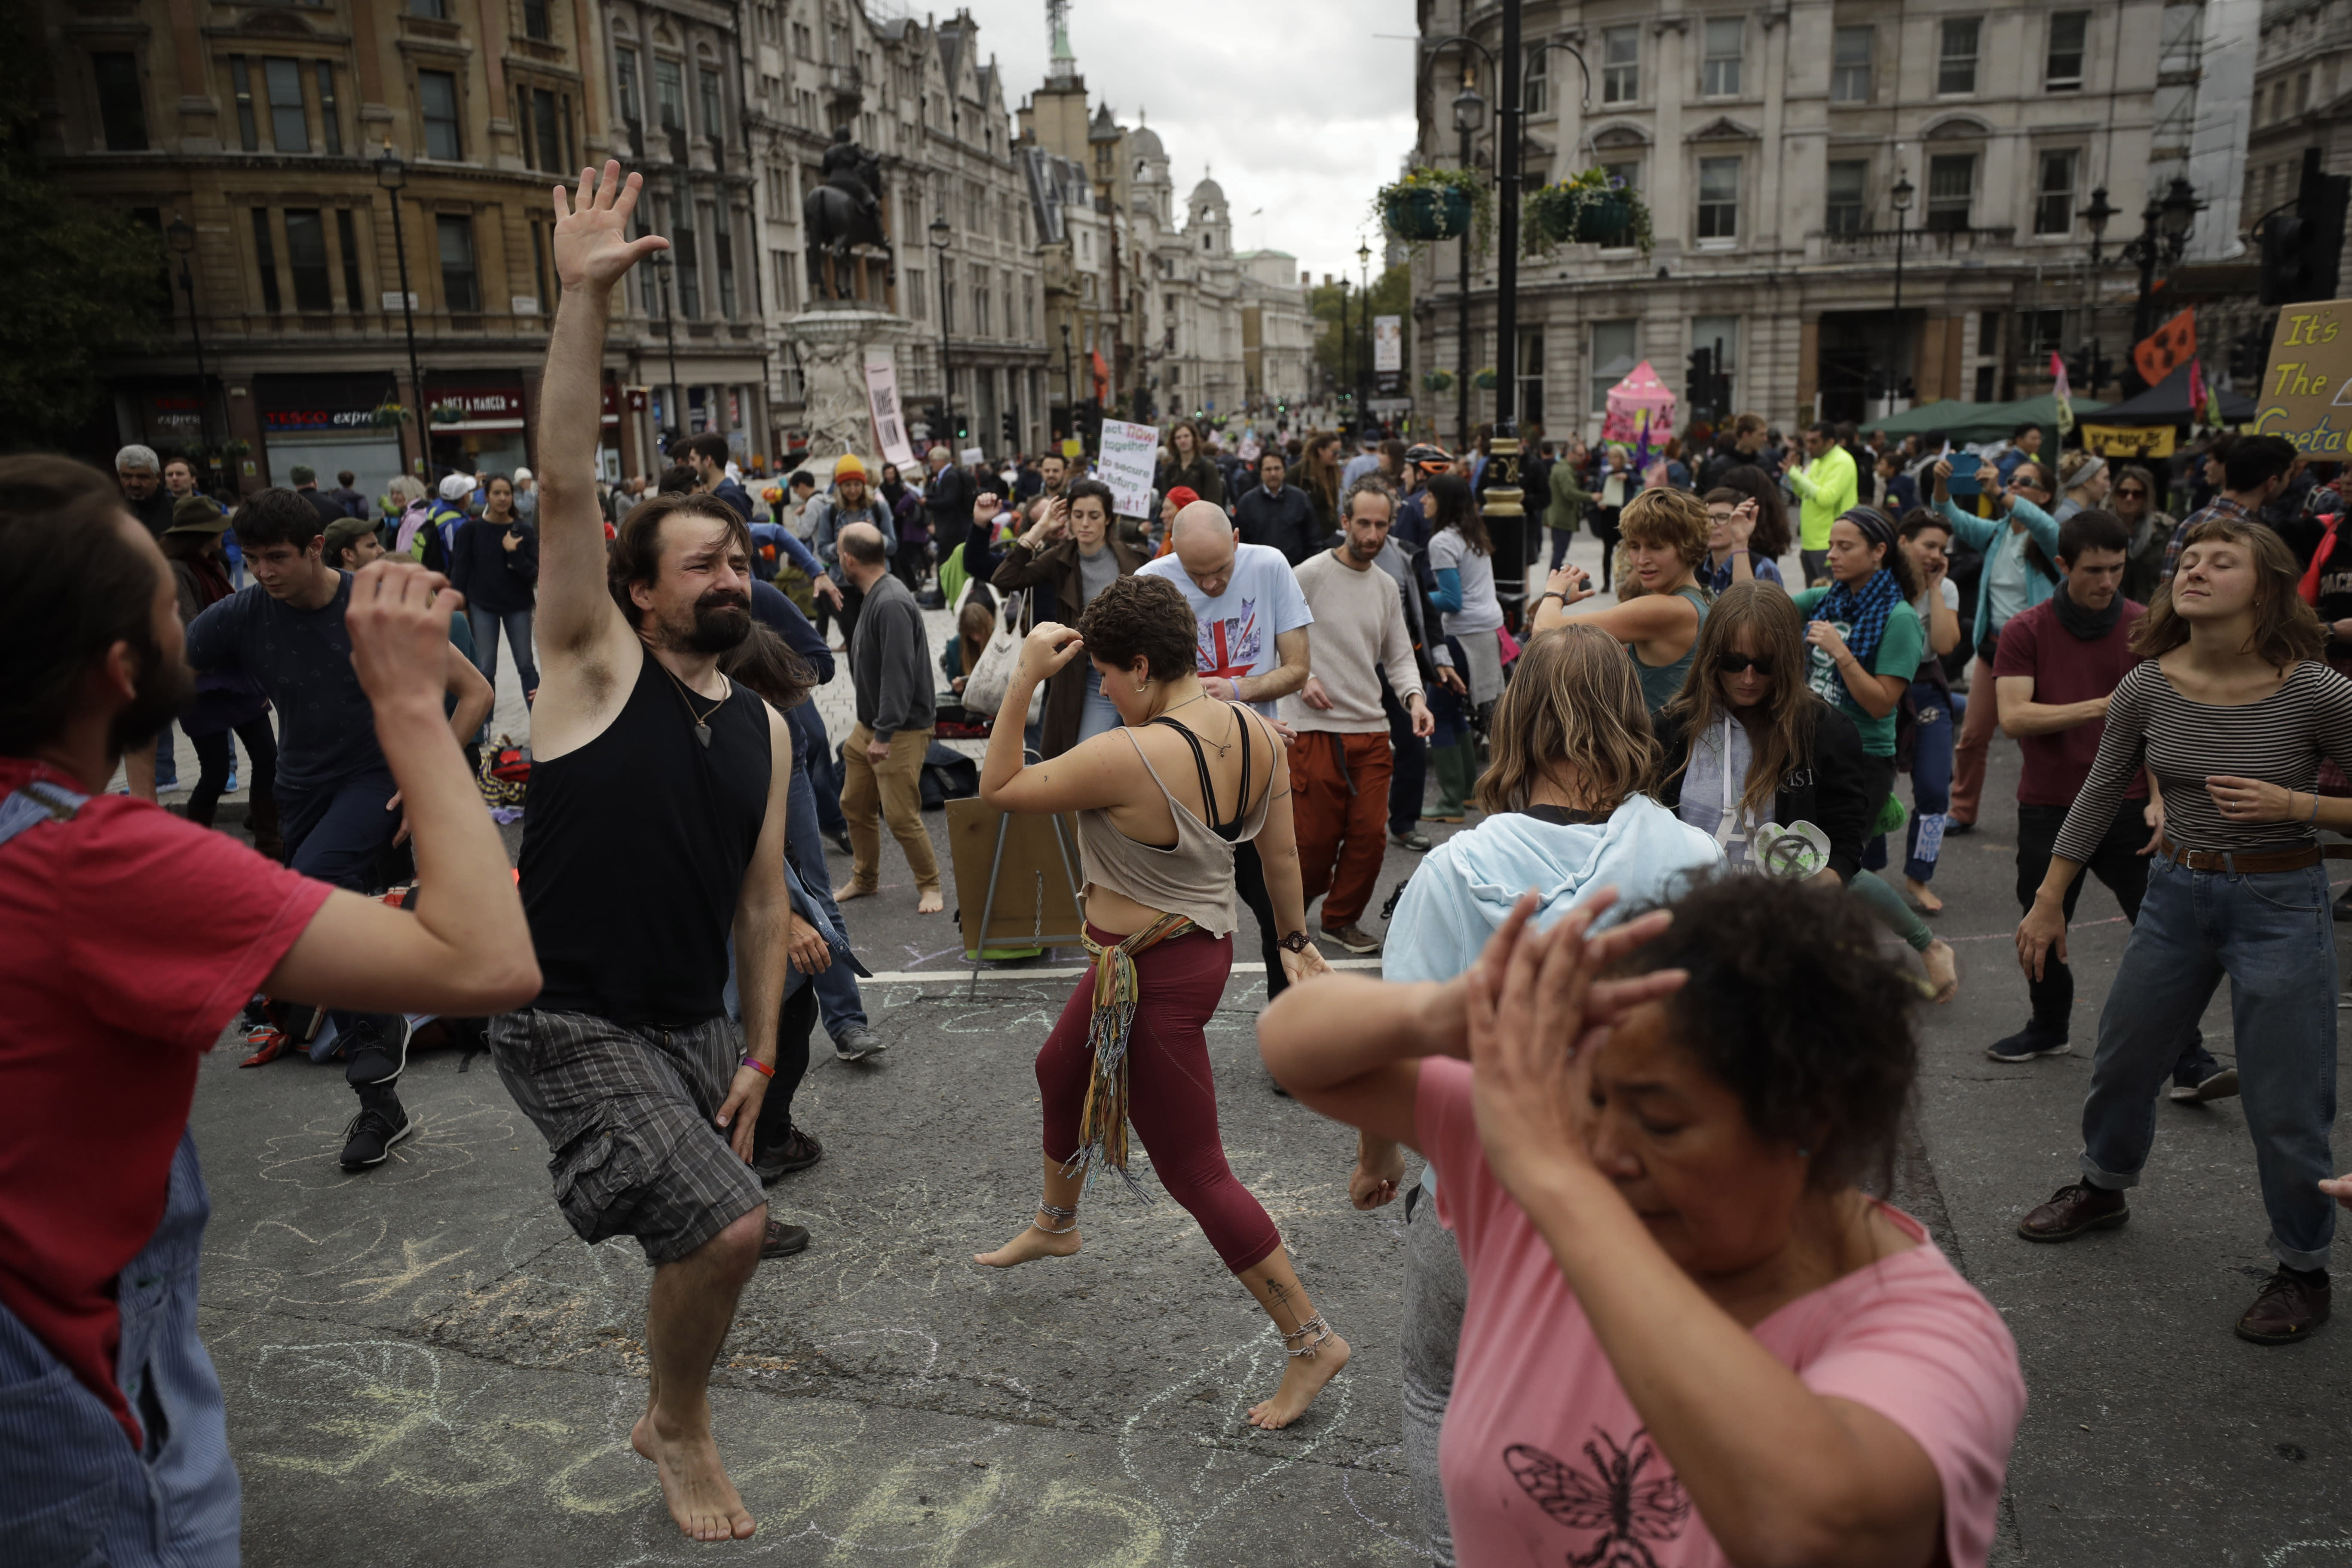 Extinction Rebellion climate change protesters dance to music as they block a street at the bottom of Trafalgar Square in London, Tuesday, Oct. 8, 2019. Hundreds of climate change activists camped out in central London on Tuesday during a second day of world protests by the Extinction Rebellion movement to demand more urgent actions to counter global warming. (AP Photo/Matt Dunham)